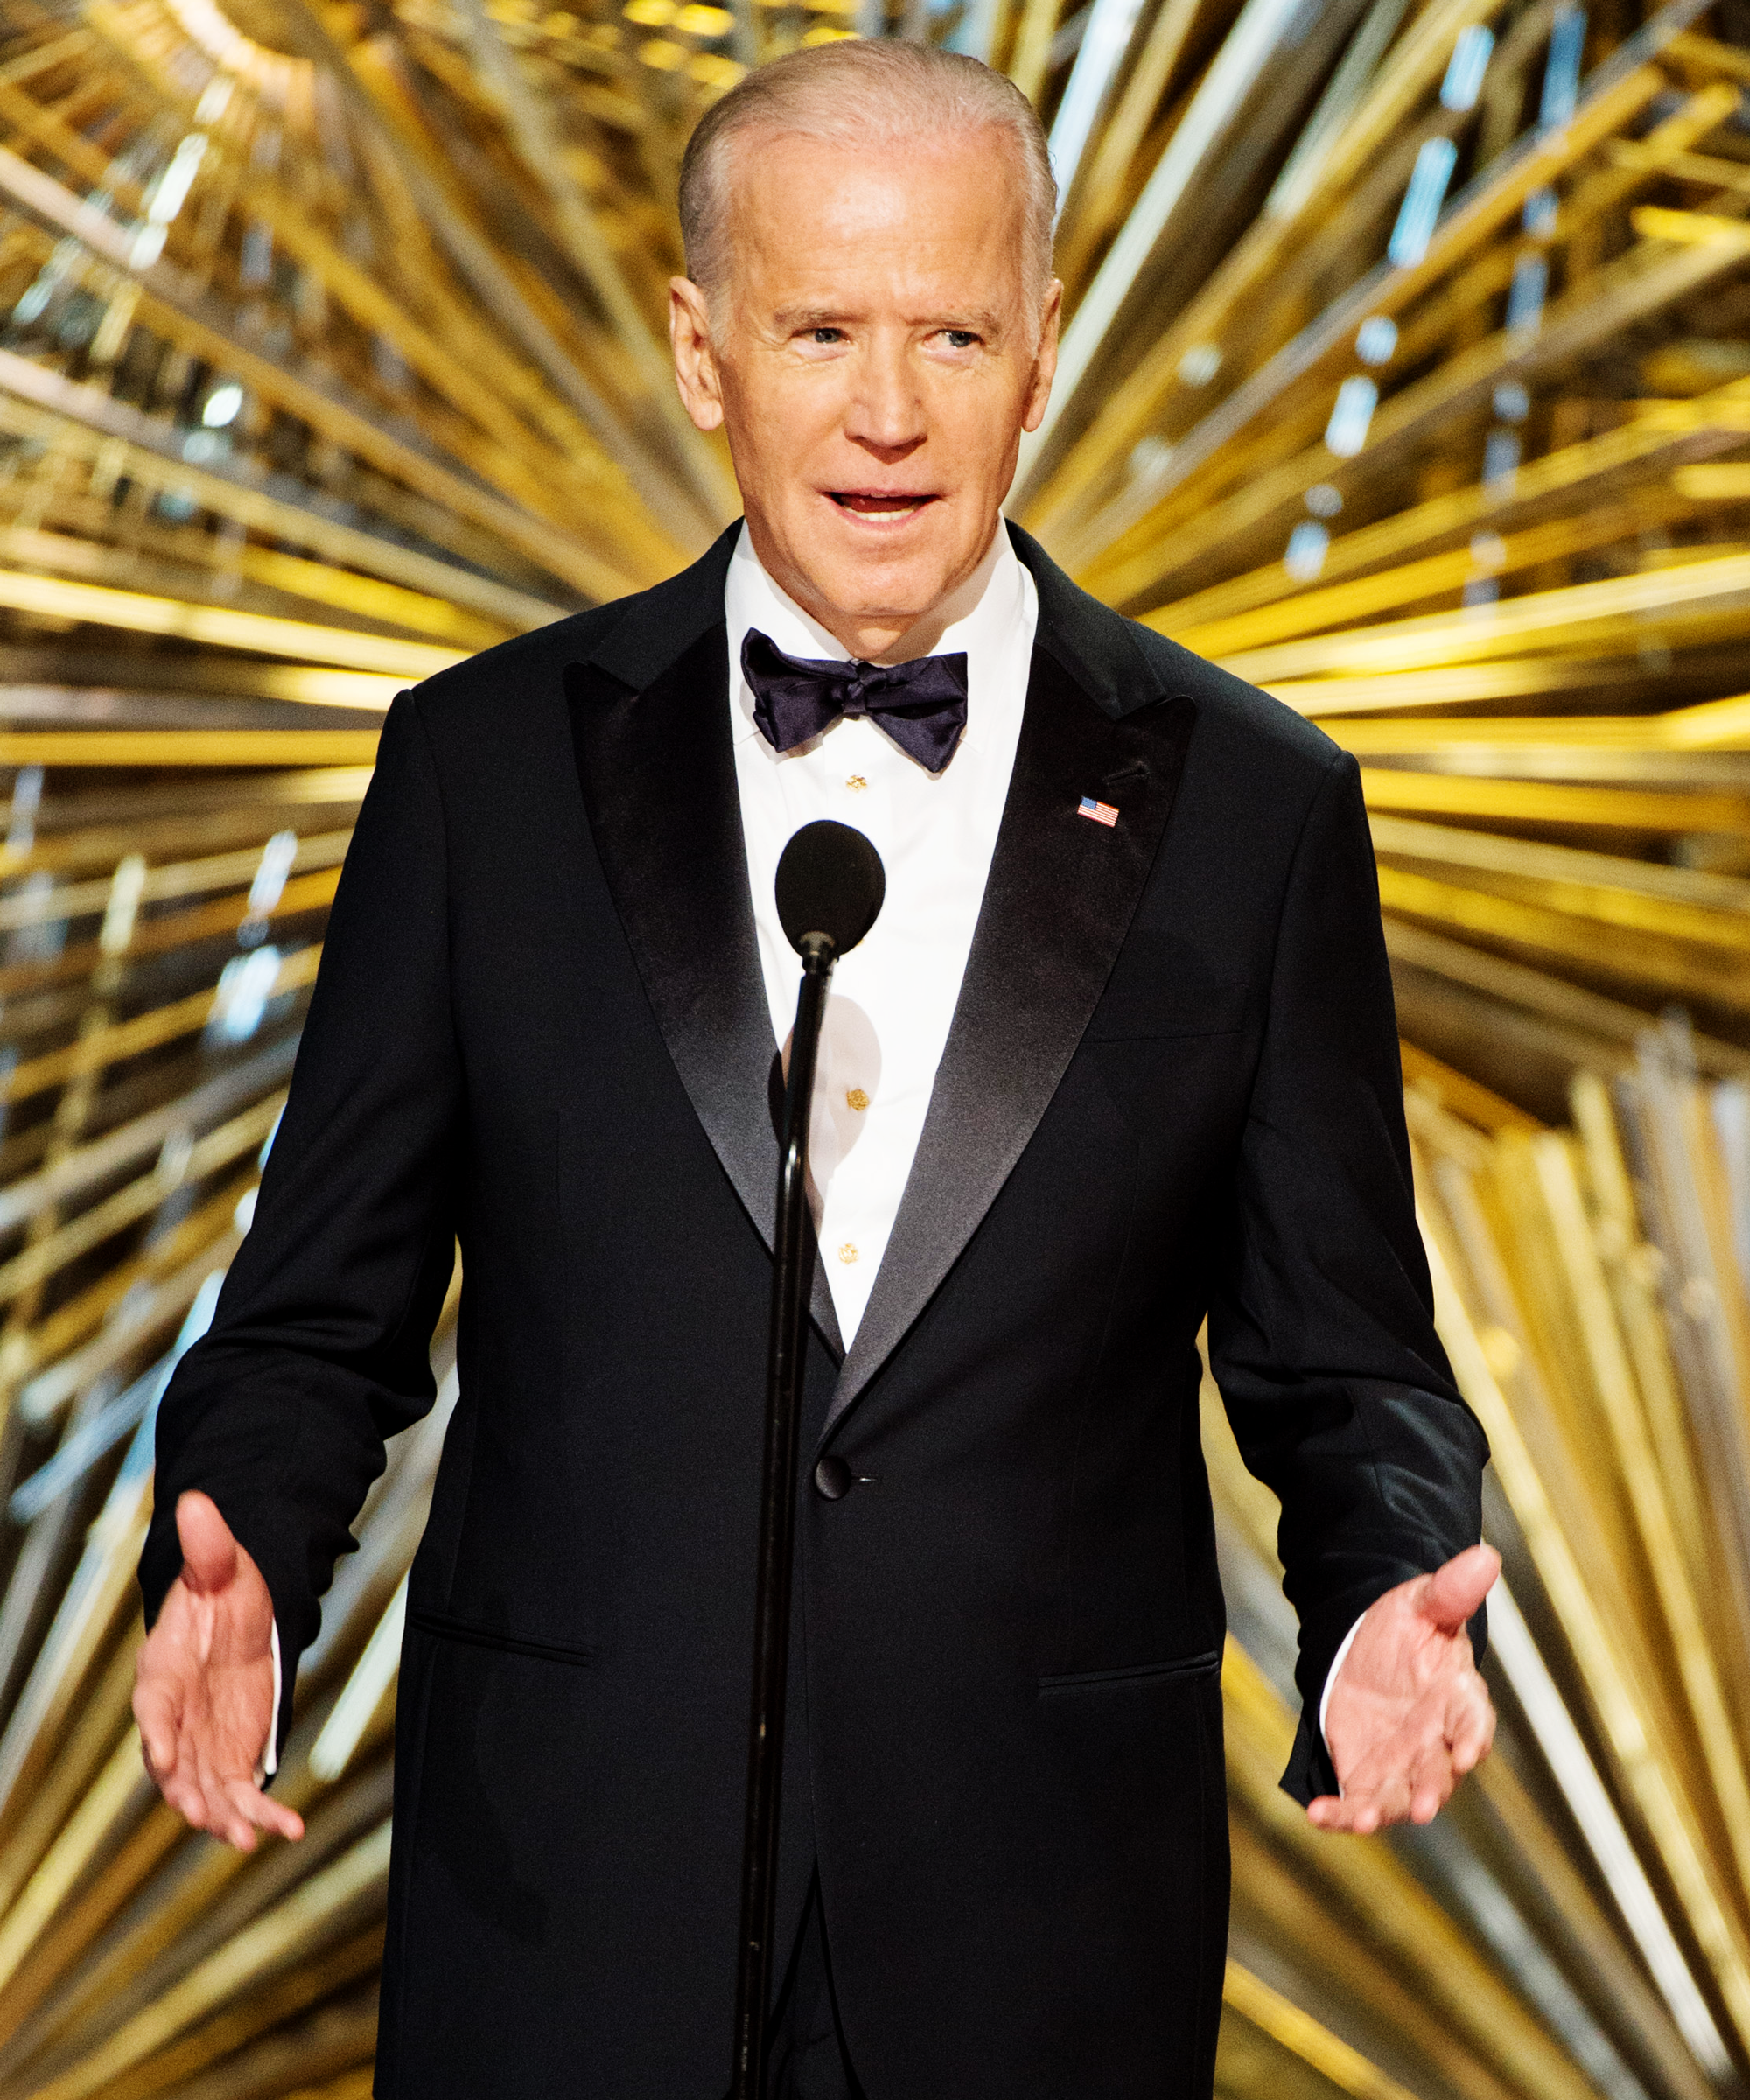 18e2987499 https://www.refinery29.com/en-us/2016/02/104289/joe-biden-oscars ...